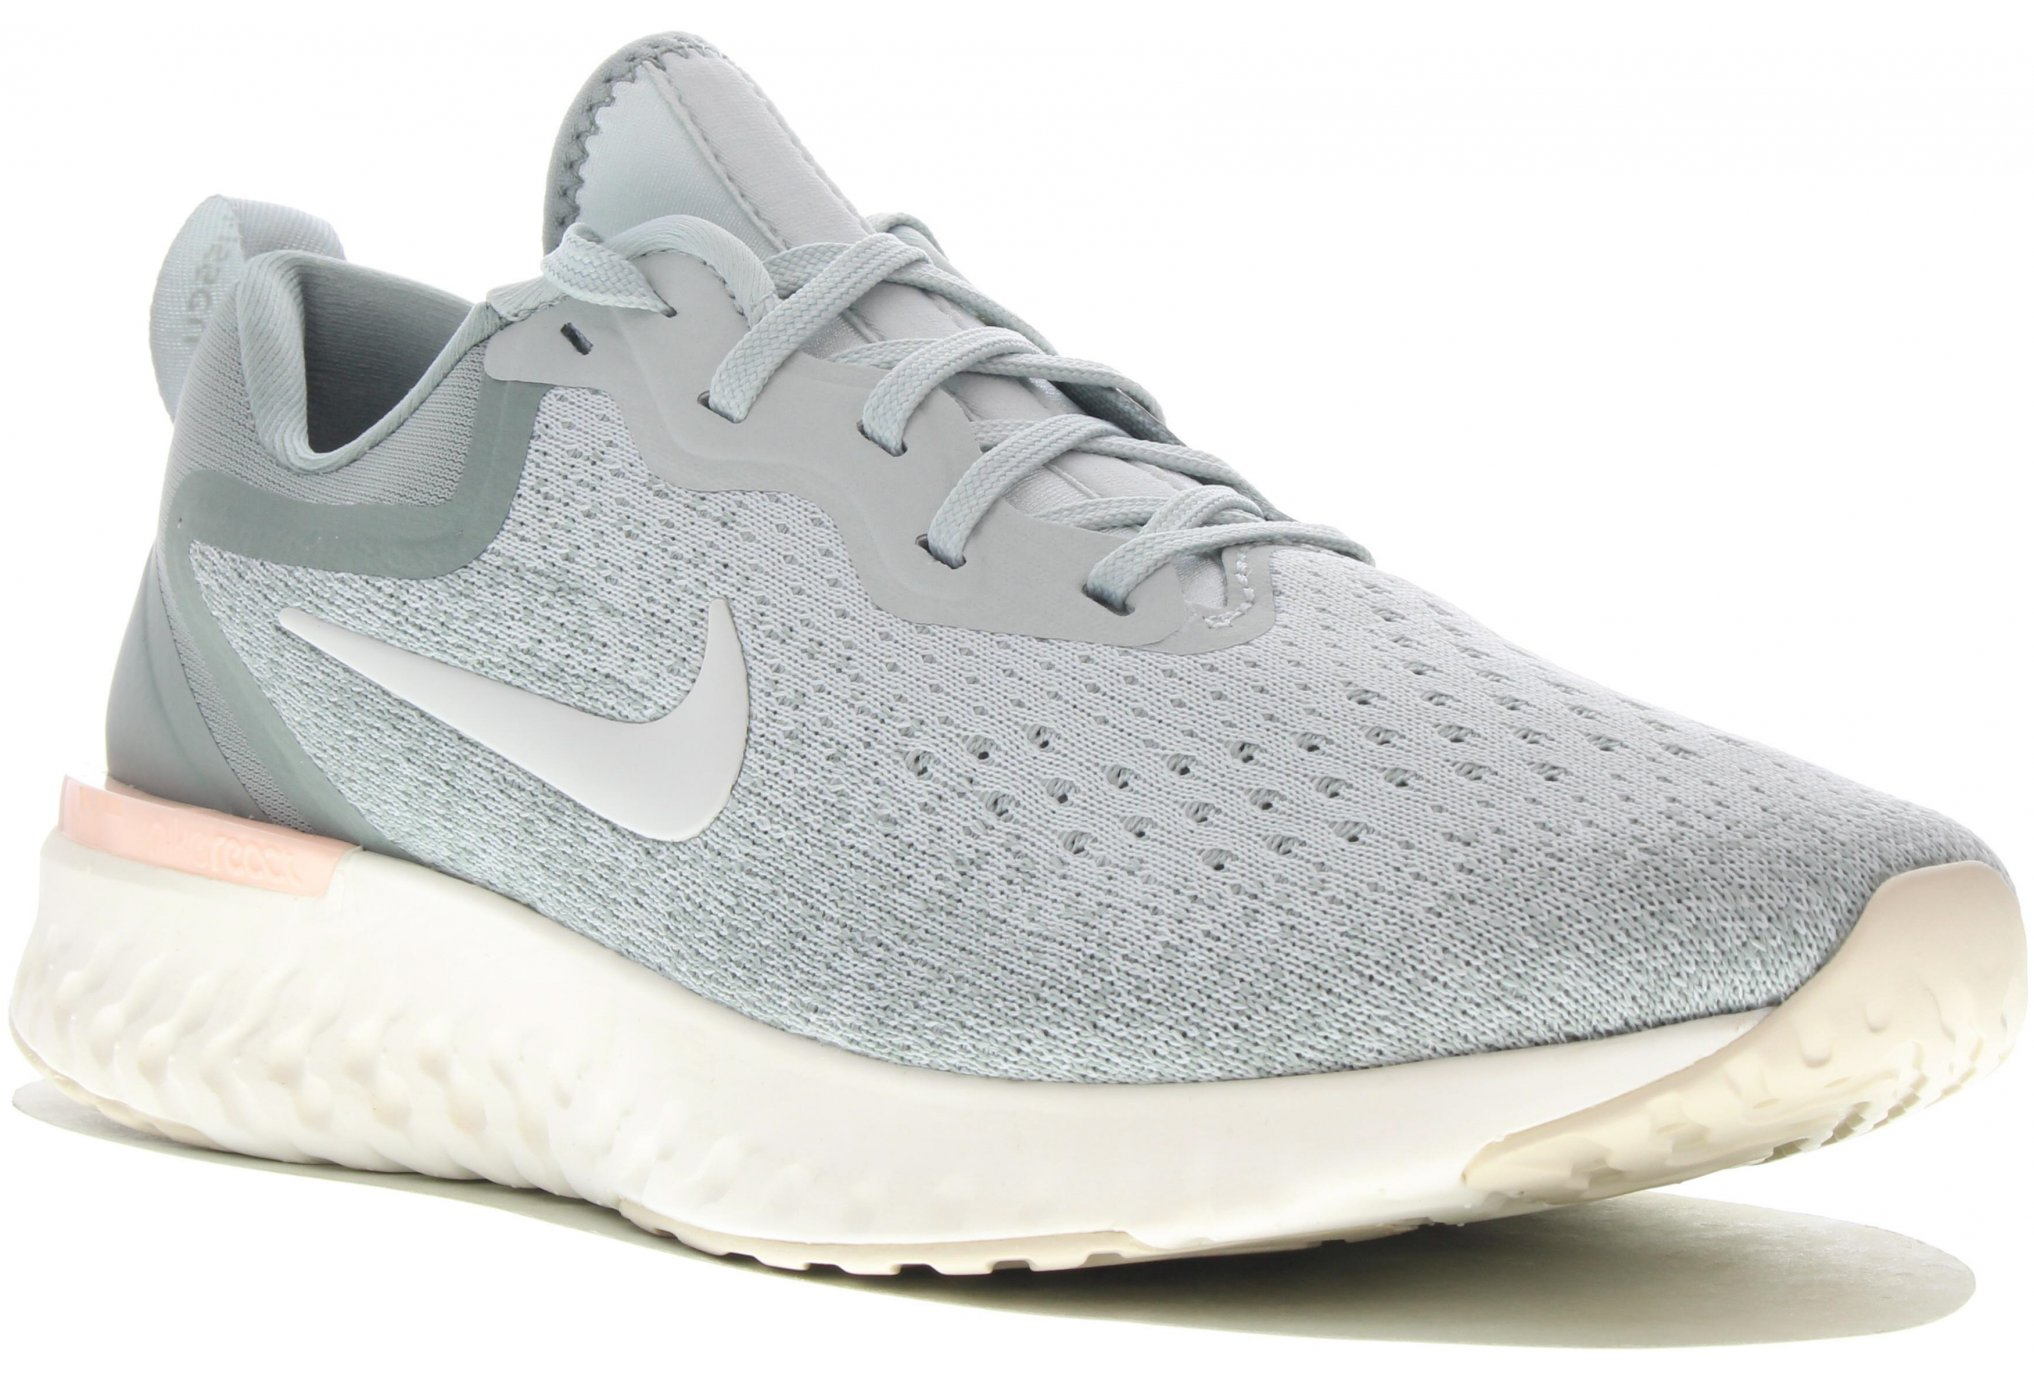 Nike Odyssey React Chaussures running femme